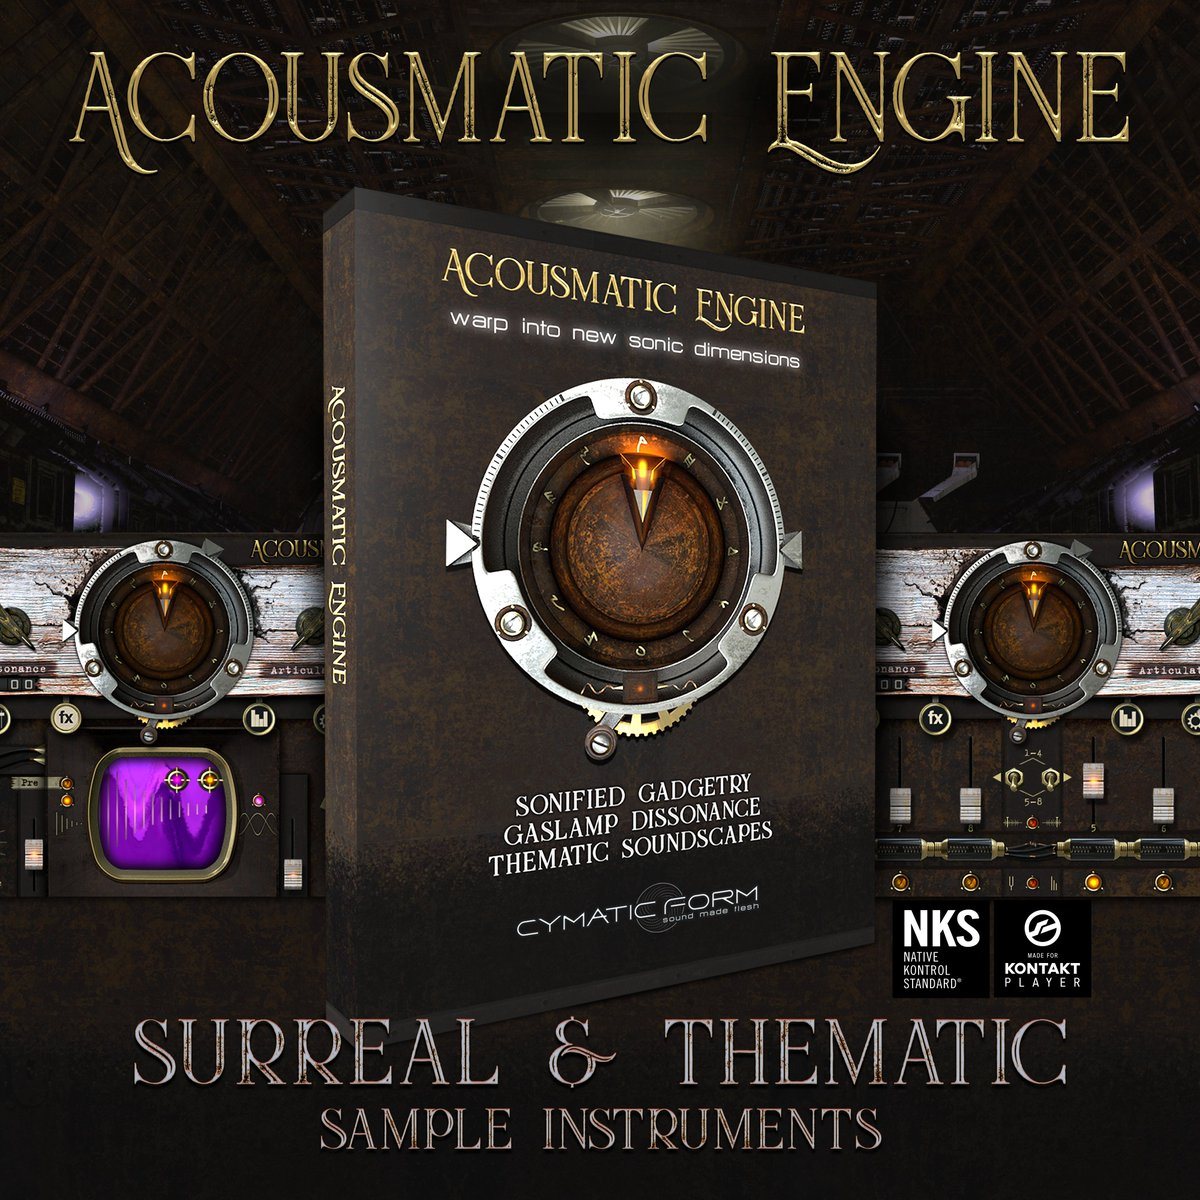 500 surreal Kontakt Instruments combining conceptual sampling and synthesis. Embracing the sound worlds of Sci-Fi Noir, Lovecraftian Horror and Steampunk, enlivening film, game and music across genres.  From the creator of Kinetic Metal and Kinetic Toys.